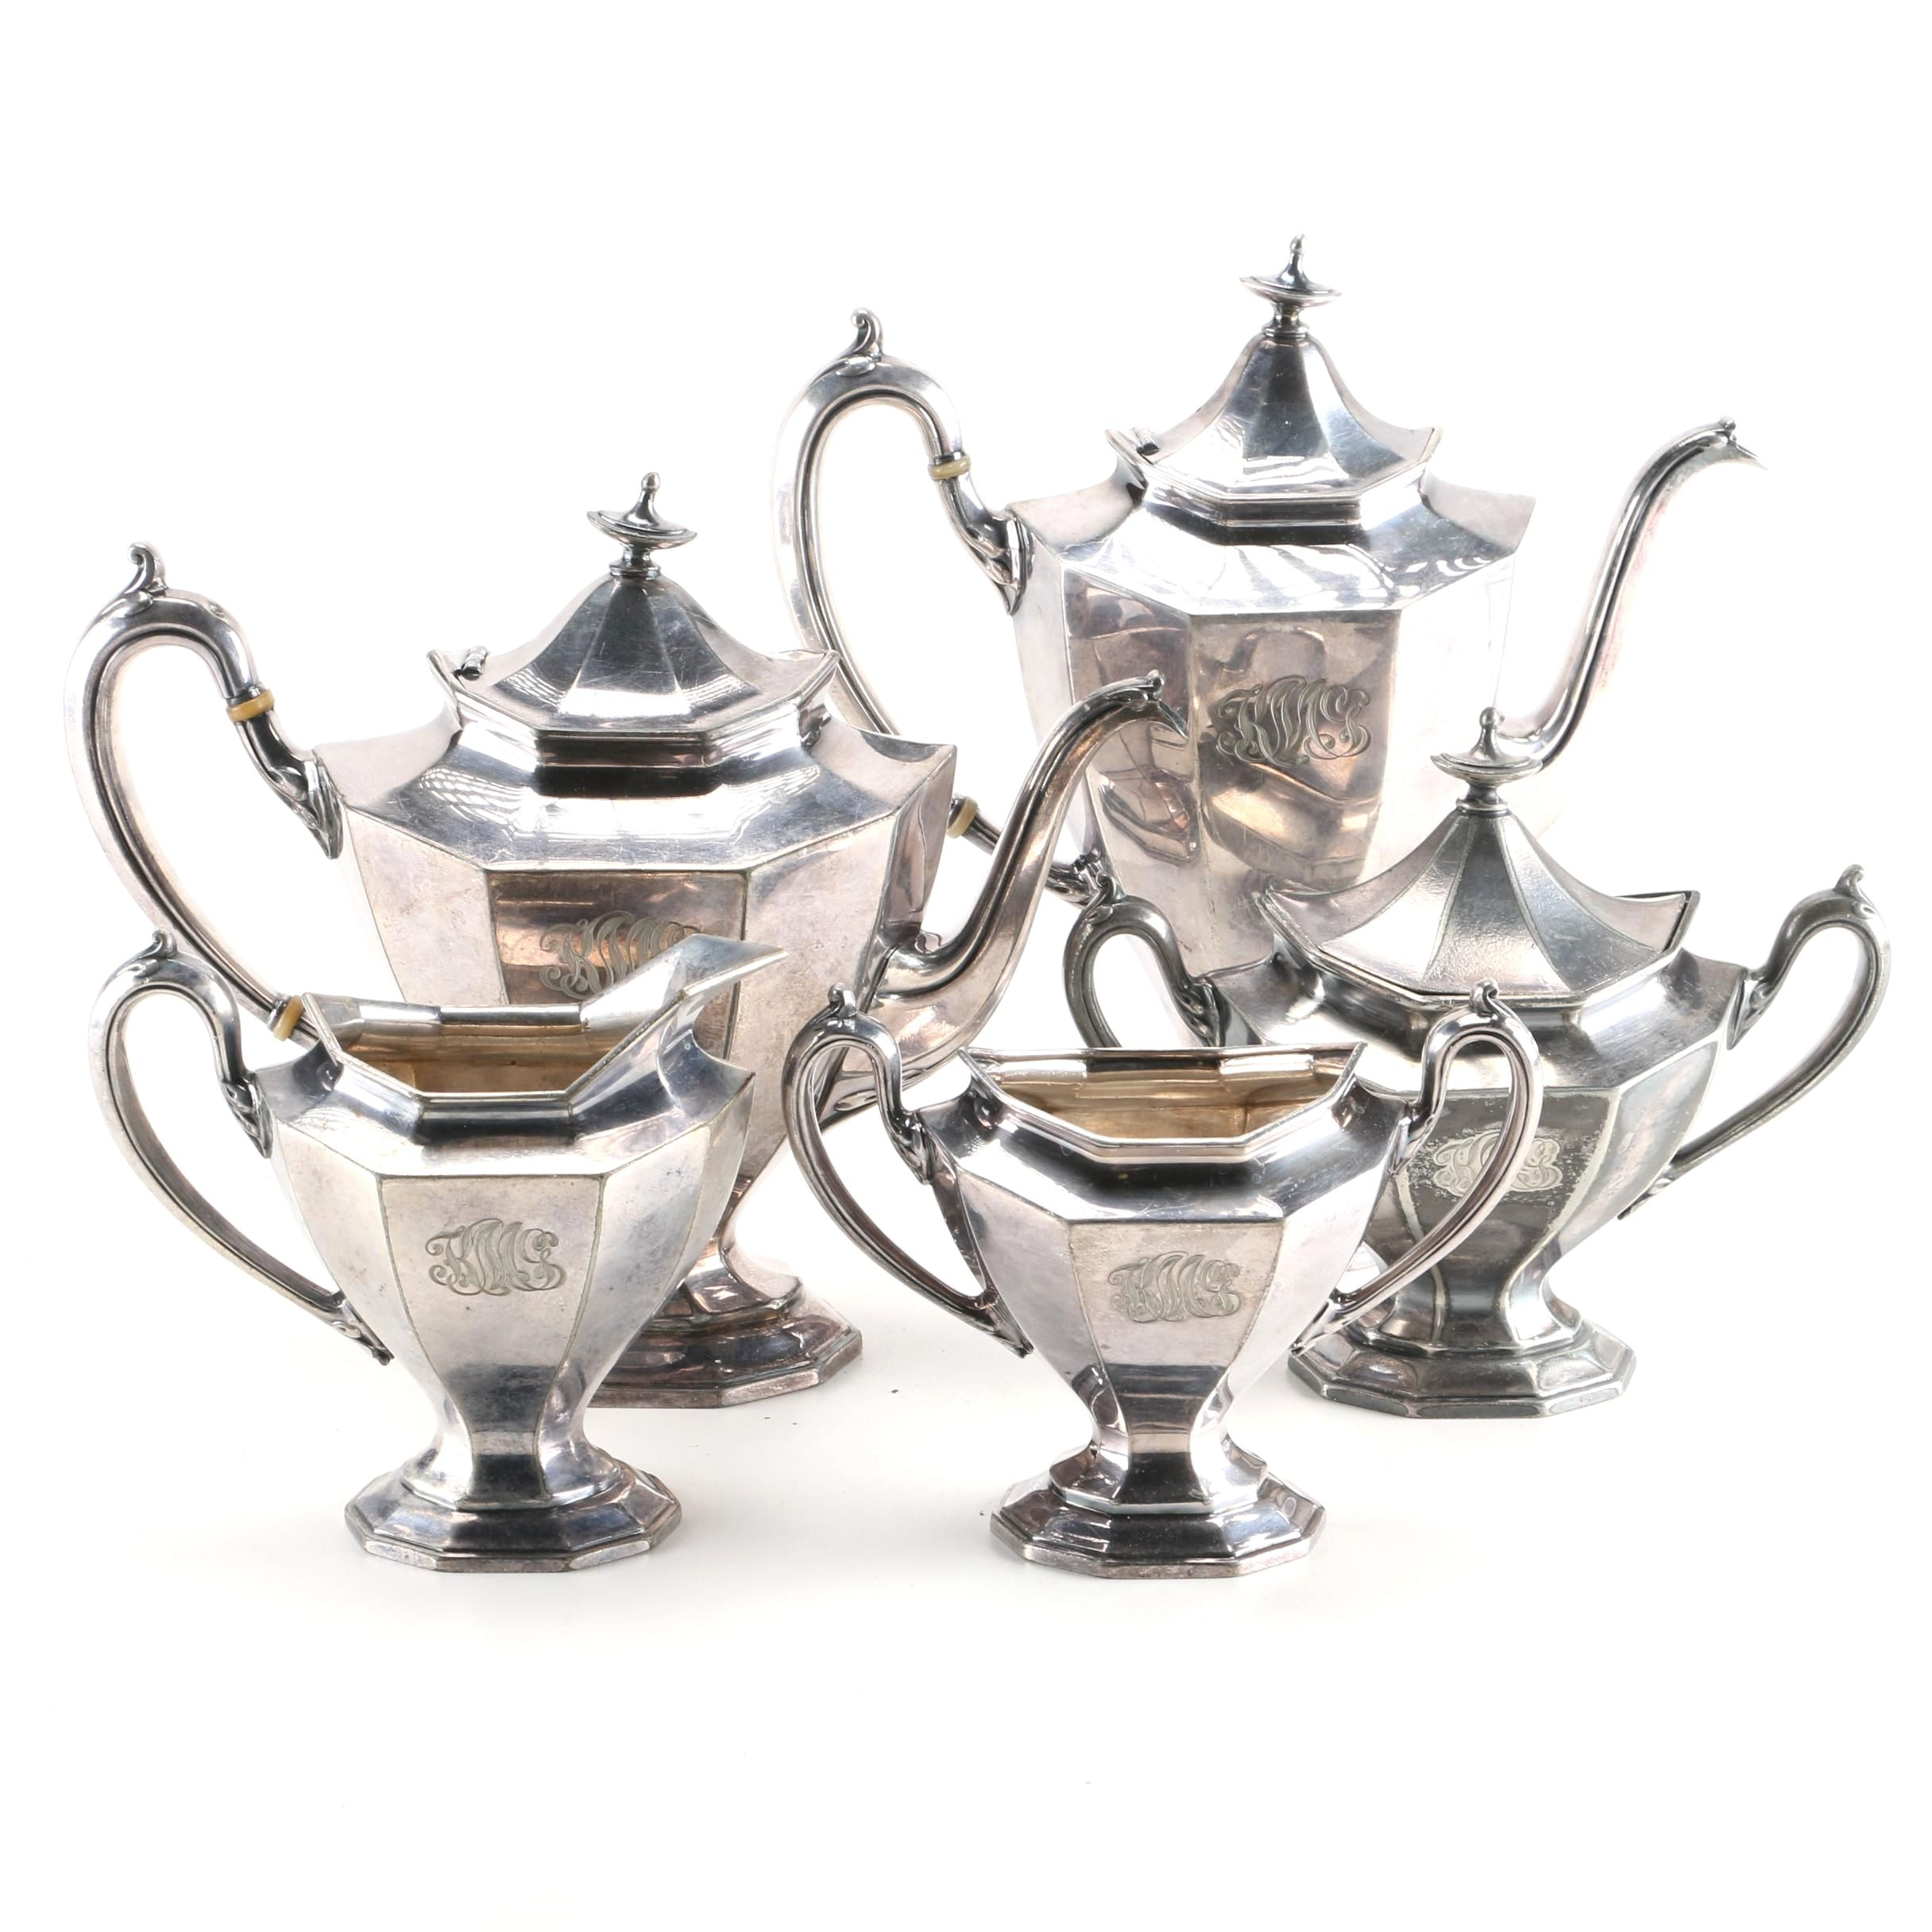 Reed & Barton Silver Plate Coffee and Tea Service